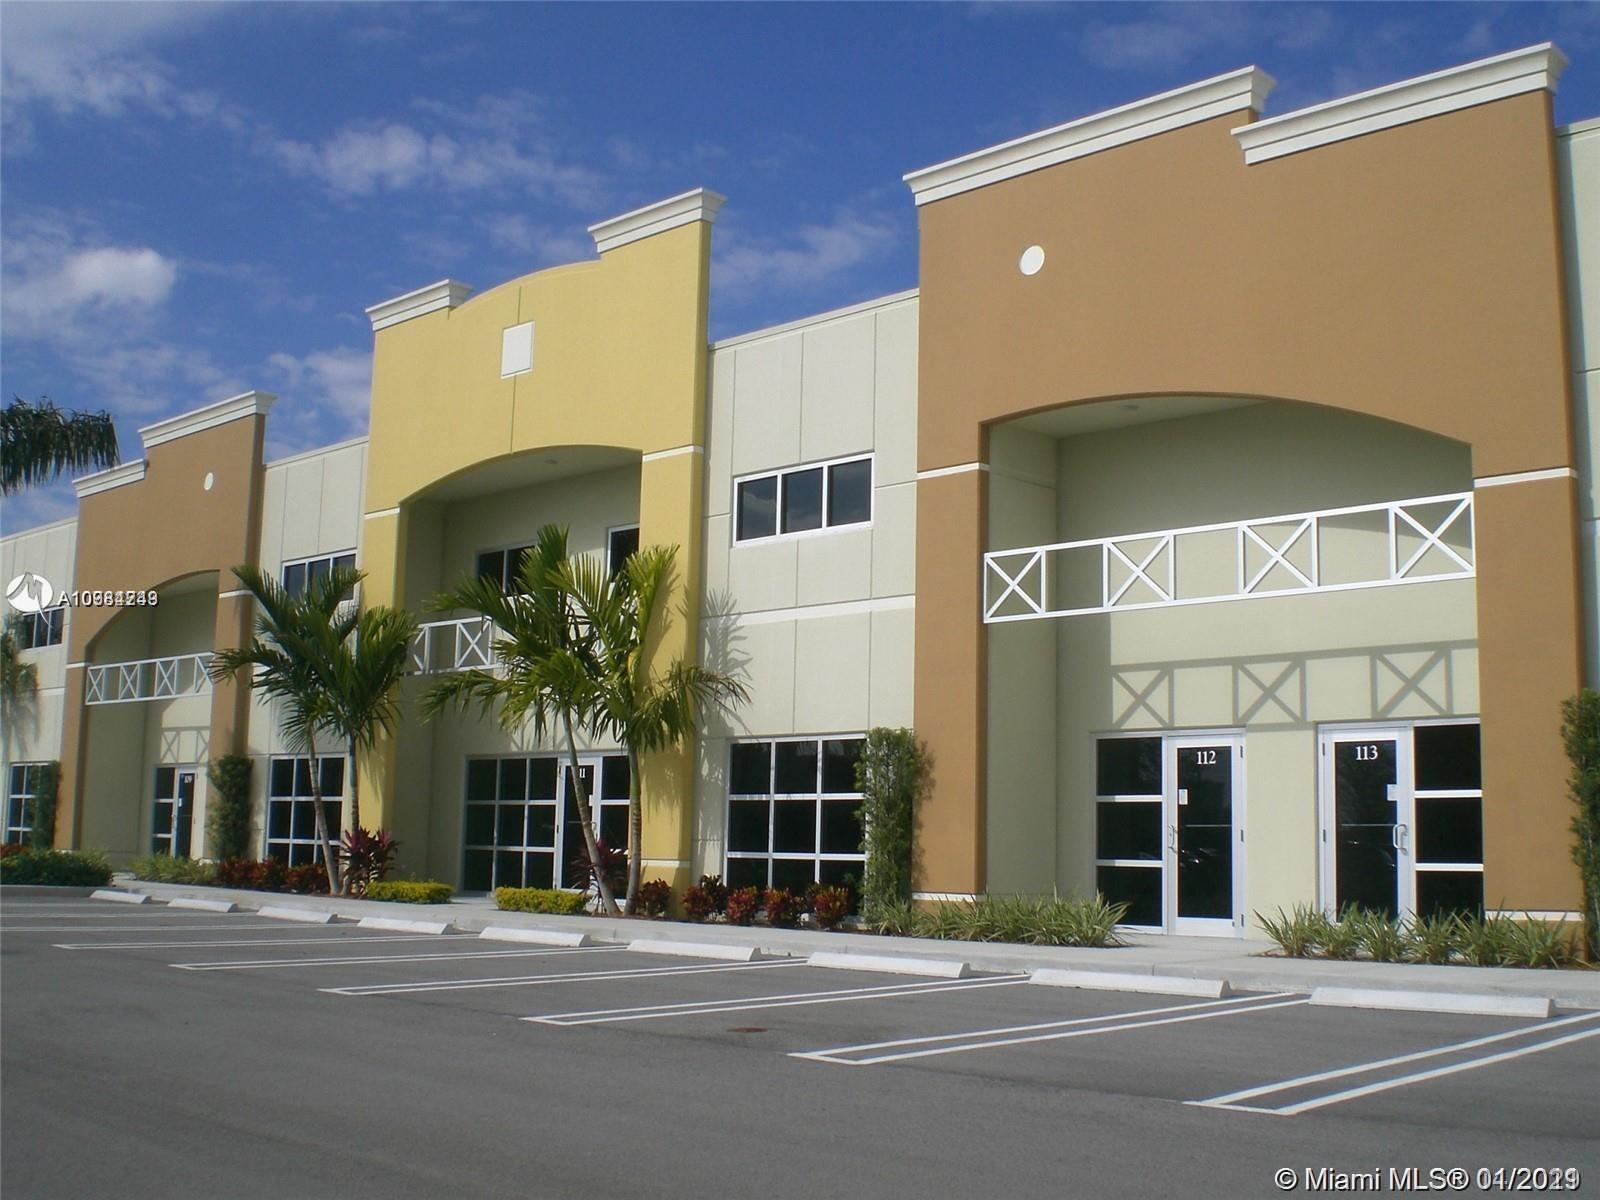 11251 NW 20th St # 113, Sweetwater, Florida 33172, ,Commercial Sale,For Sale,11251 NW 20th St # 113,A10984249